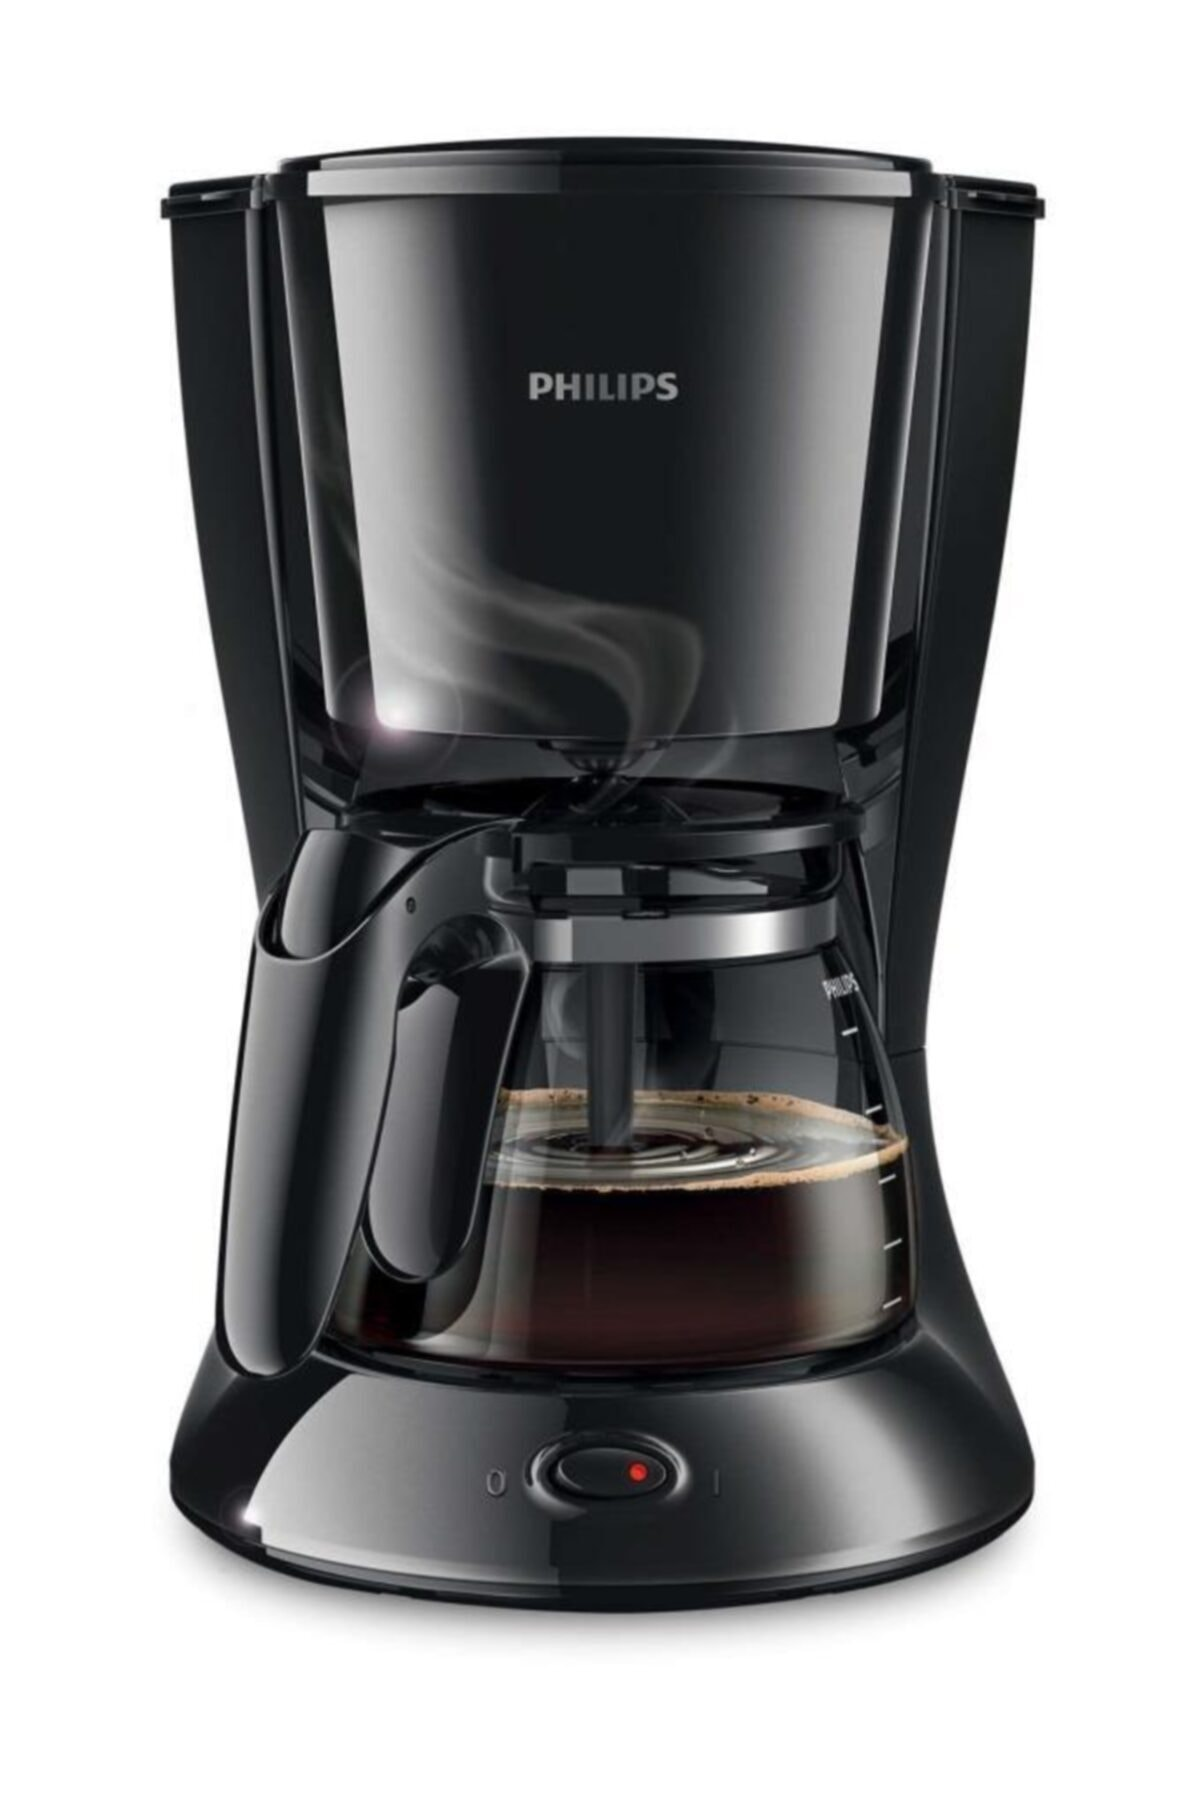 Philips Daily Collection Siyah Filtre Kahve Makinesi 2